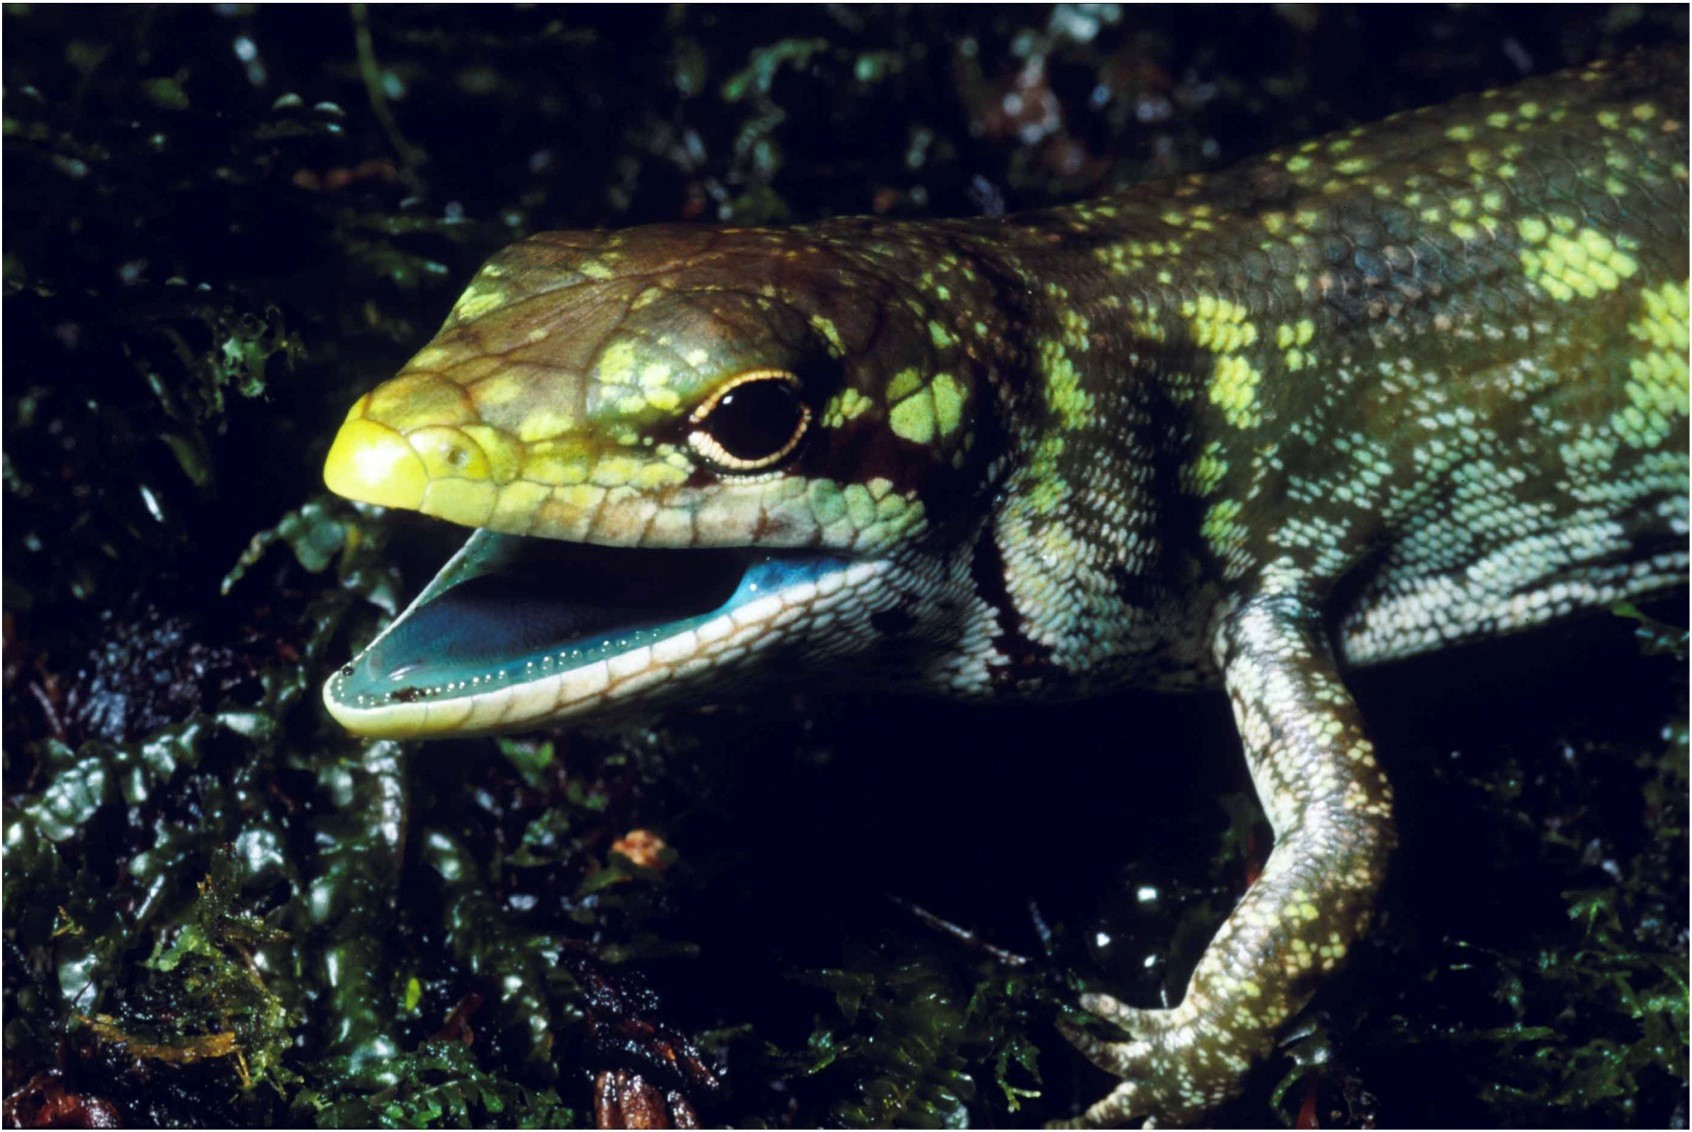 Lizards known as green-blooded skinks manage to remain healthy despite having levels of bile that are 40 times higher than the lethal concentration in humans.